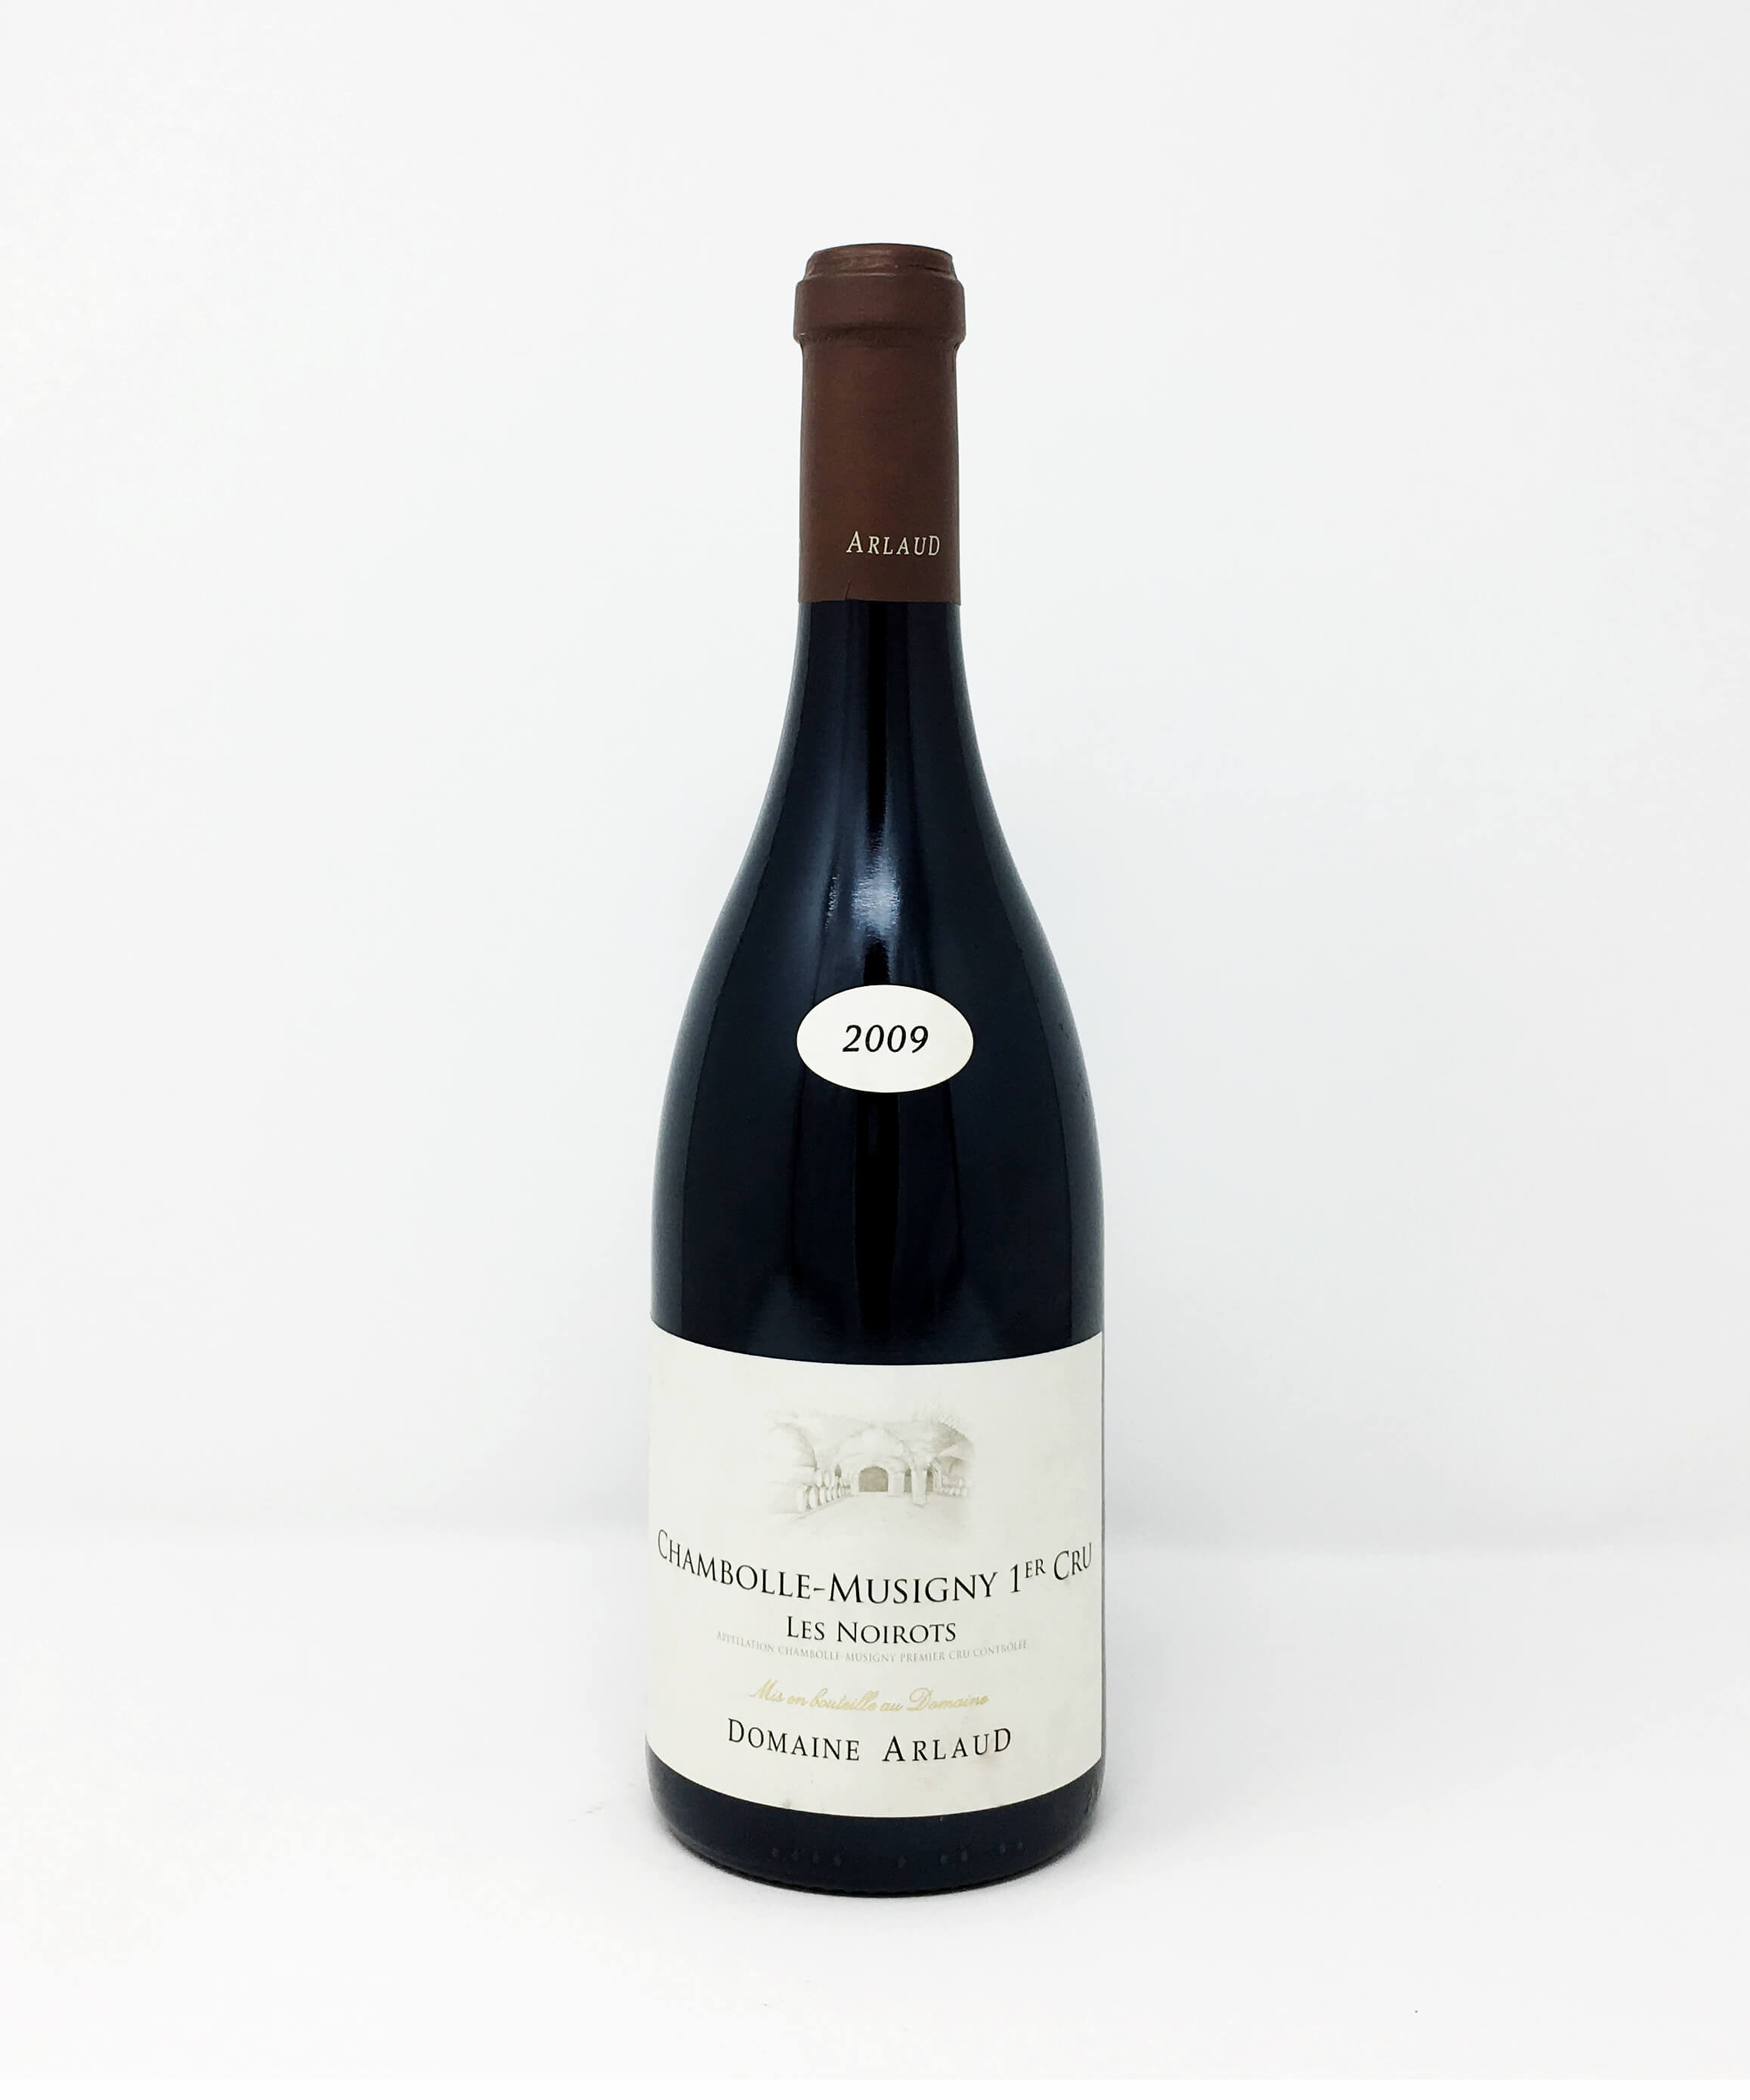 Domaine Arlaud, Chambolle-Mousigny 1er Cru, Les Noirots